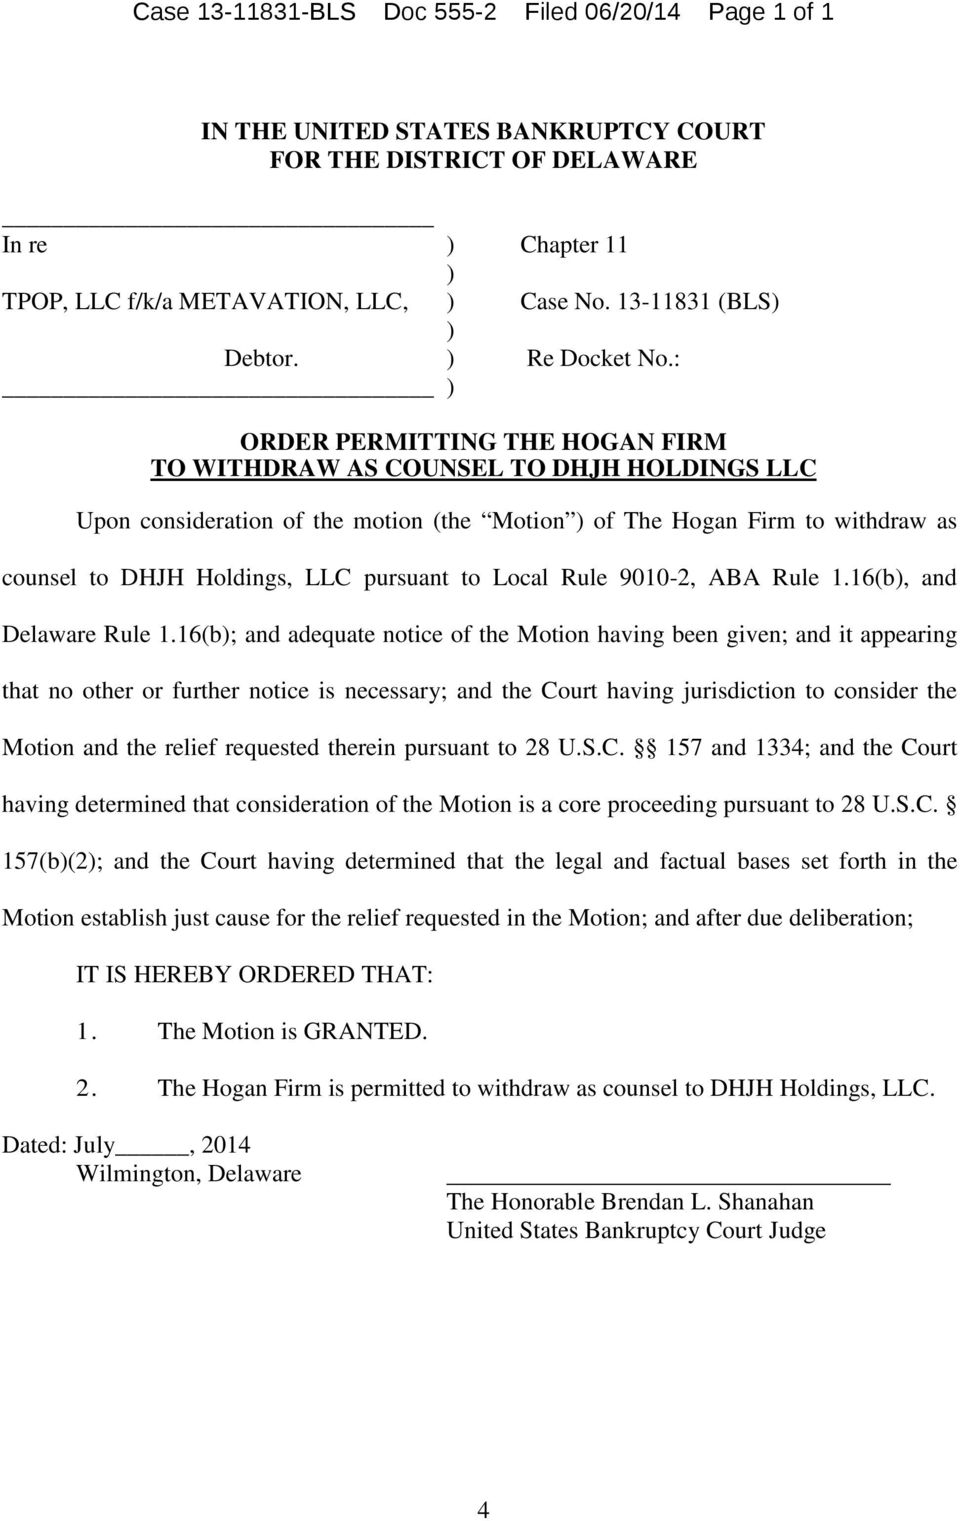 : ORDER PERMITTING THE HOGAN FIRM TO WITHDRAW AS COUNSEL TO DHJH HOLDINGS LLC Upon consideration of the motion (the Motion of The Hogan Firm to withdraw as counsel to DHJH Holdings, LLC pursuant to